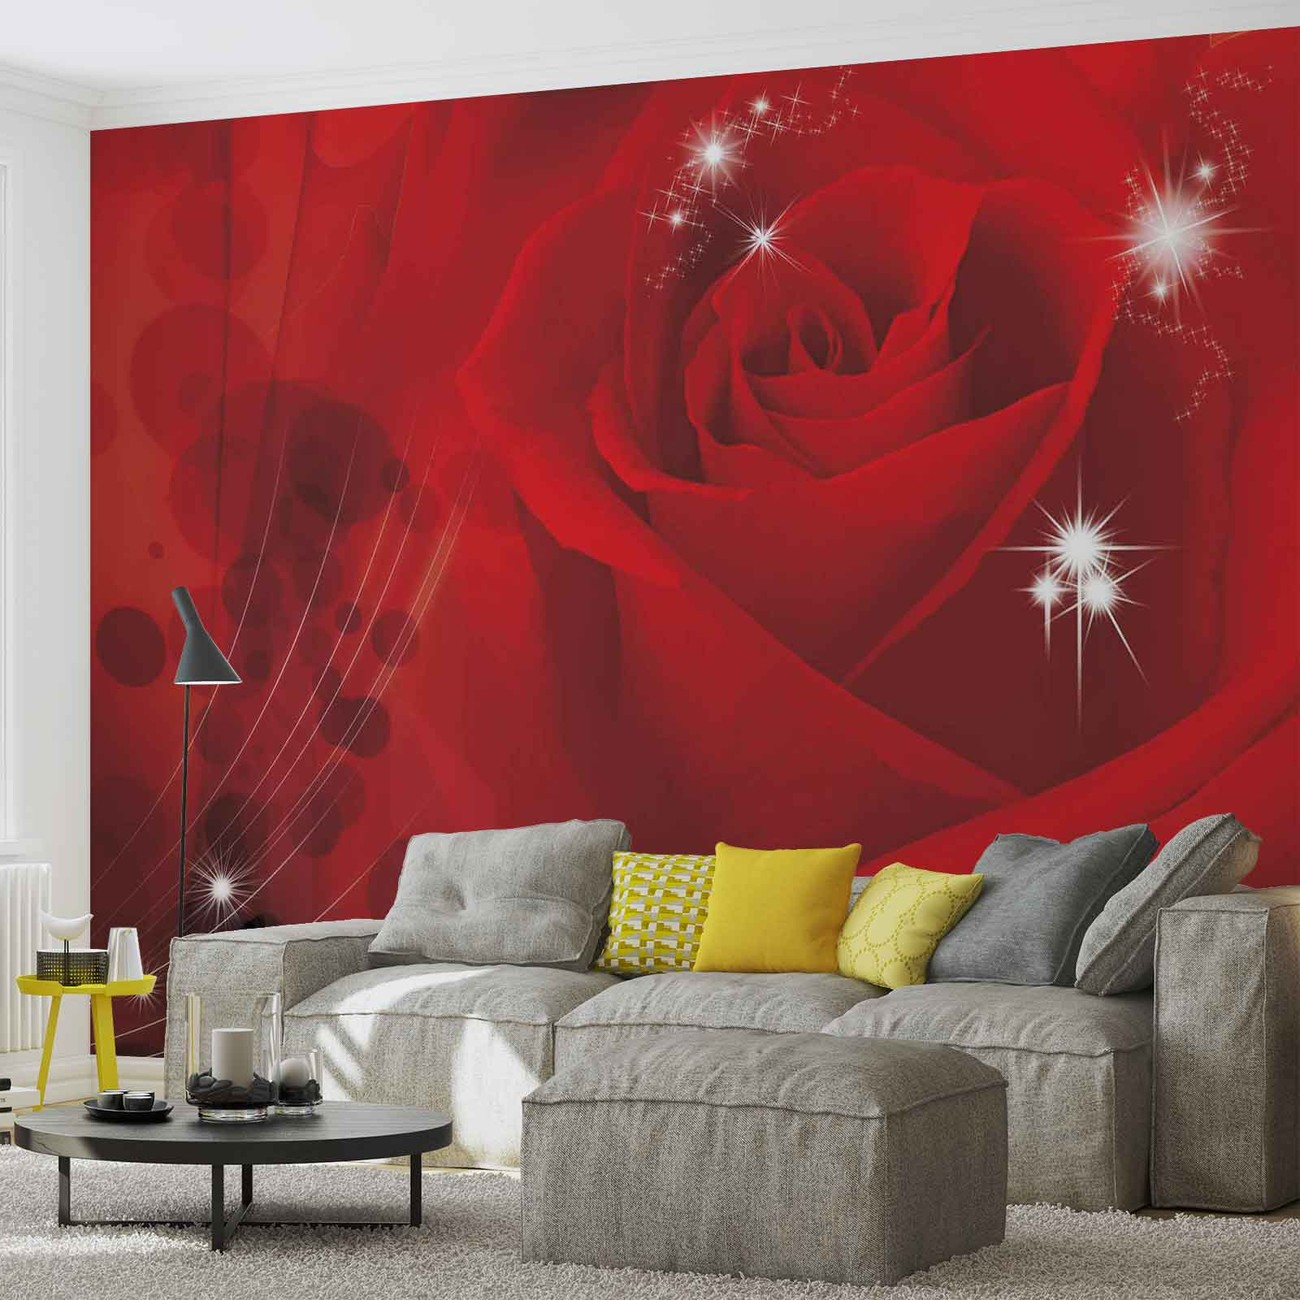 Flower rose red wall paper mural buy at europosters for Mural flower